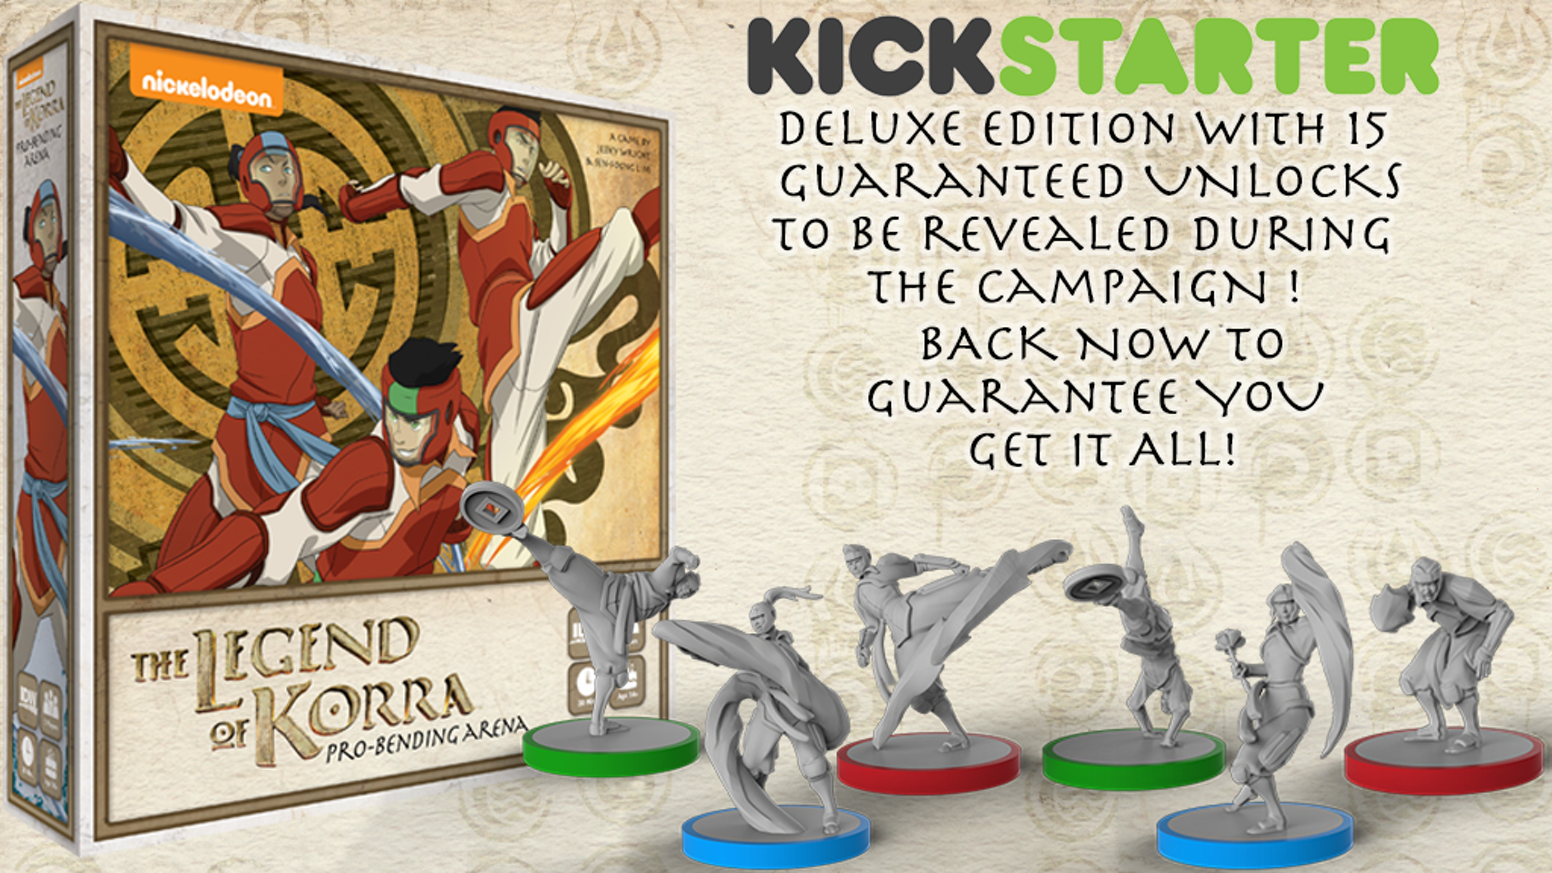 The Legend Of Korra Pro Bending Arena By Idw Games Kickstarter